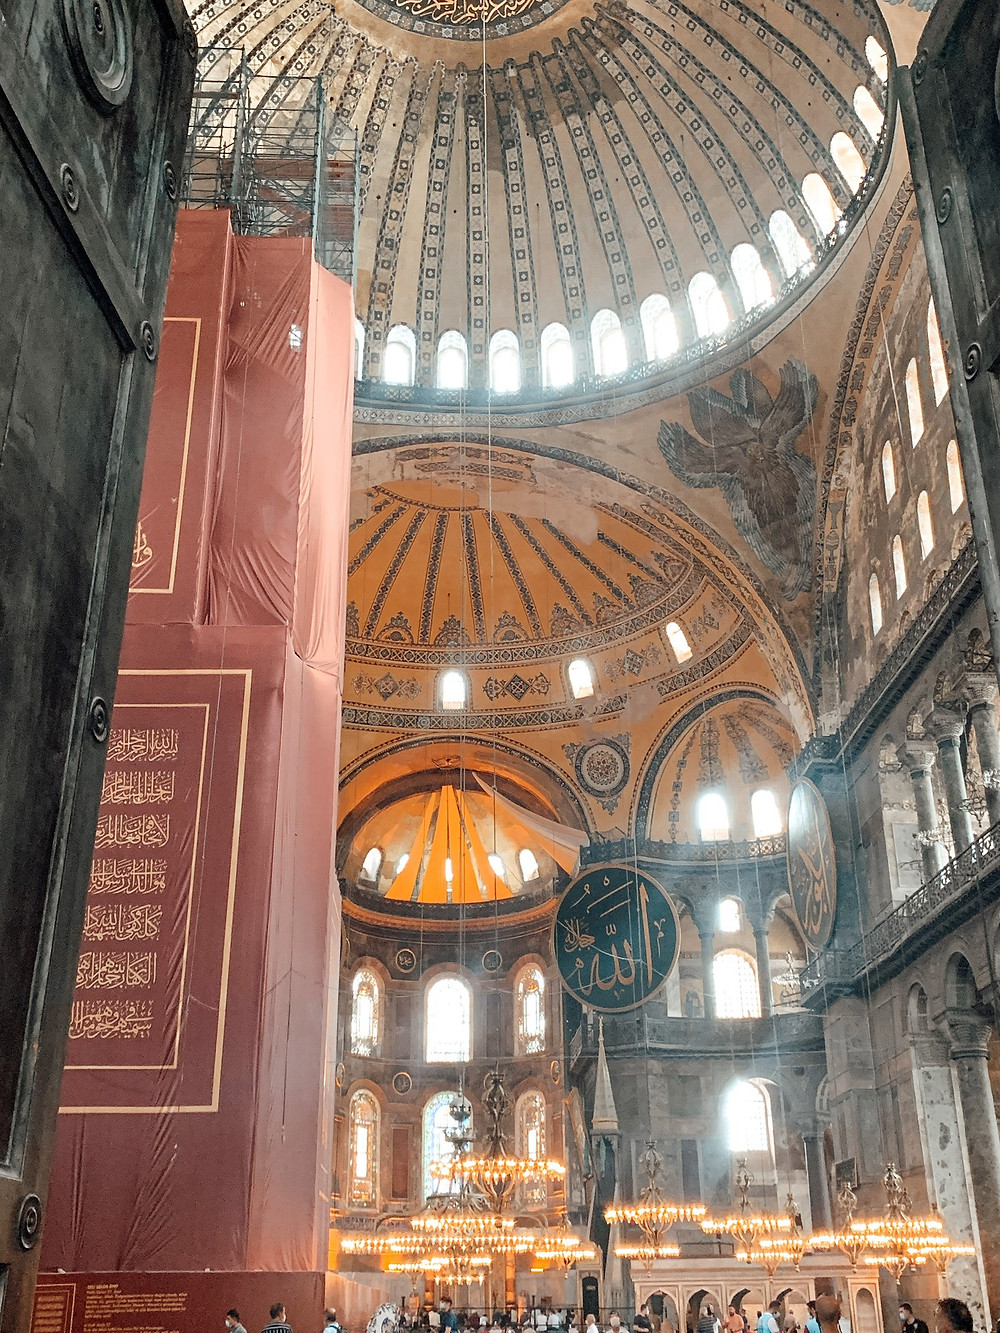 Inside the Hagia Sophia - now an active mosque